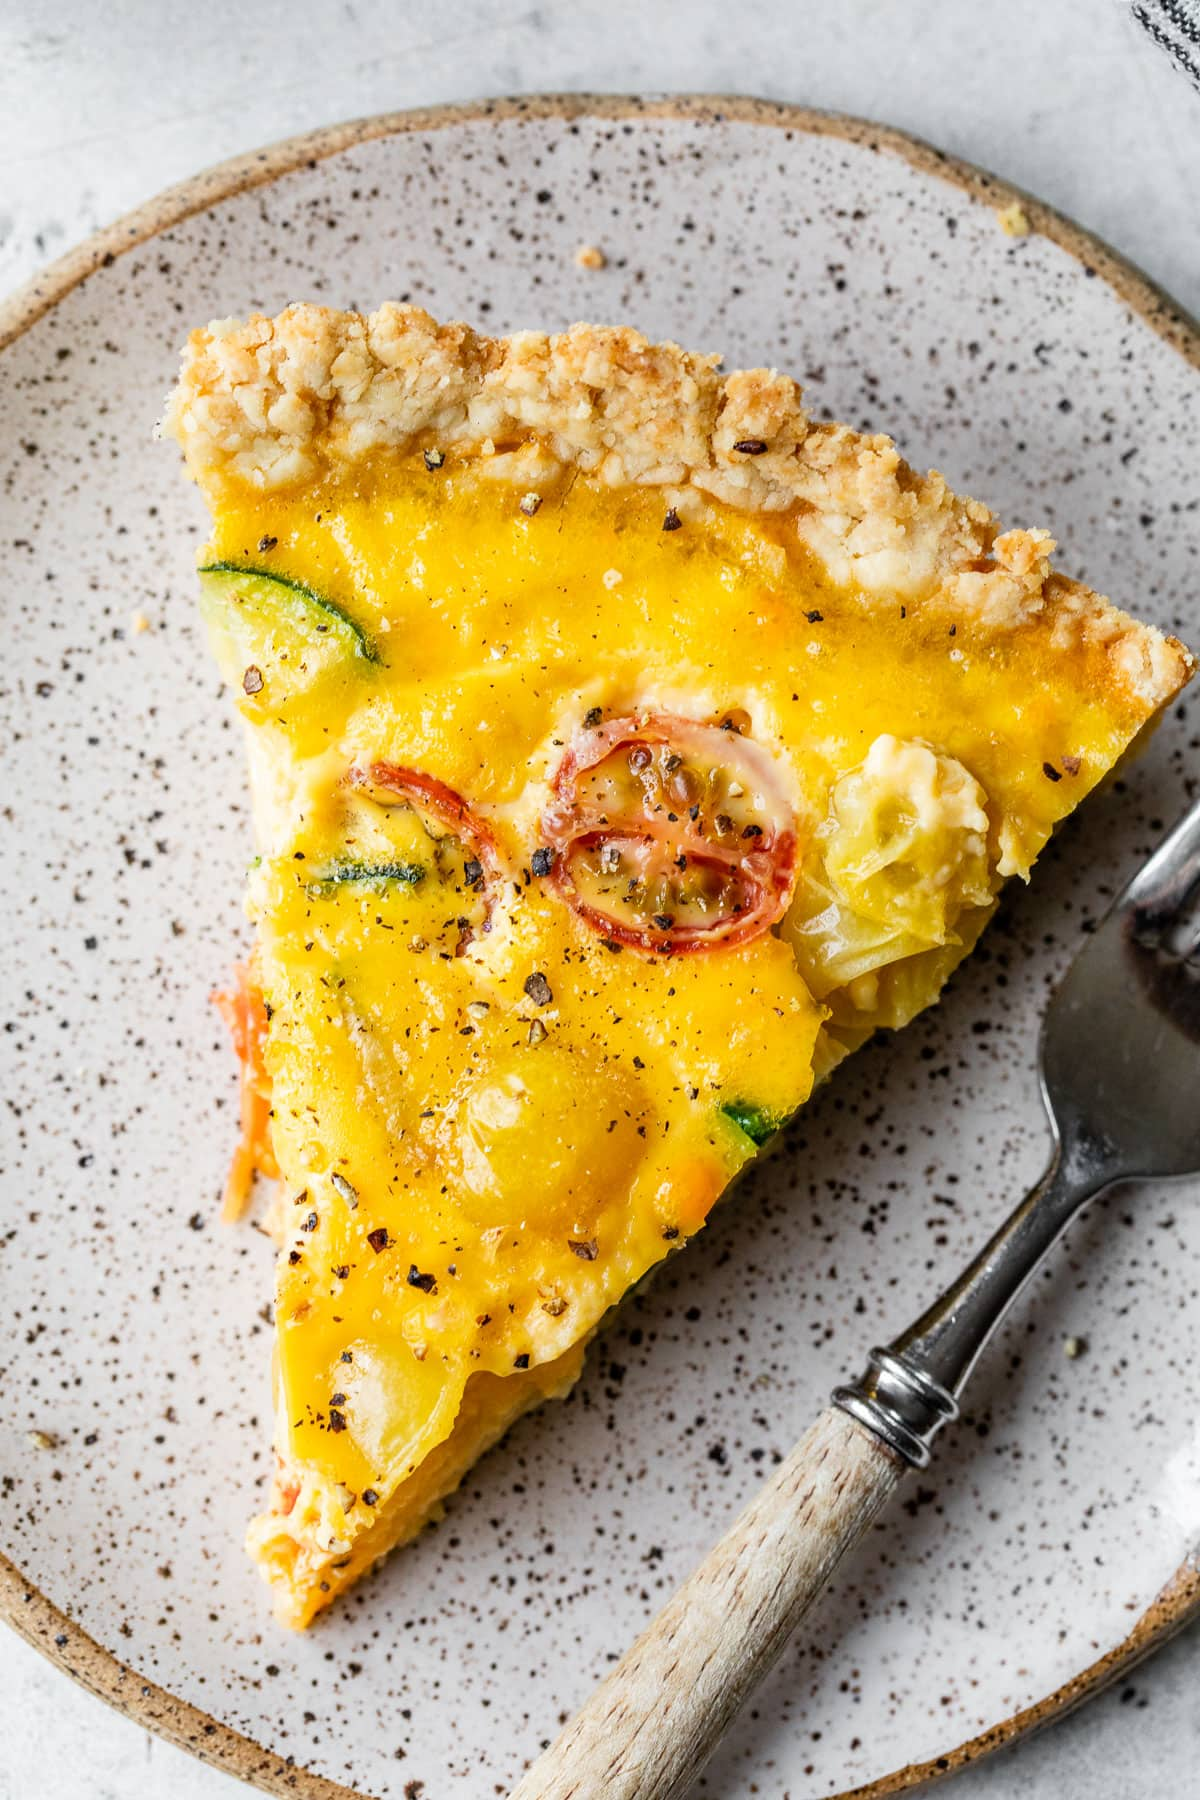 A slice of quiche on a plate